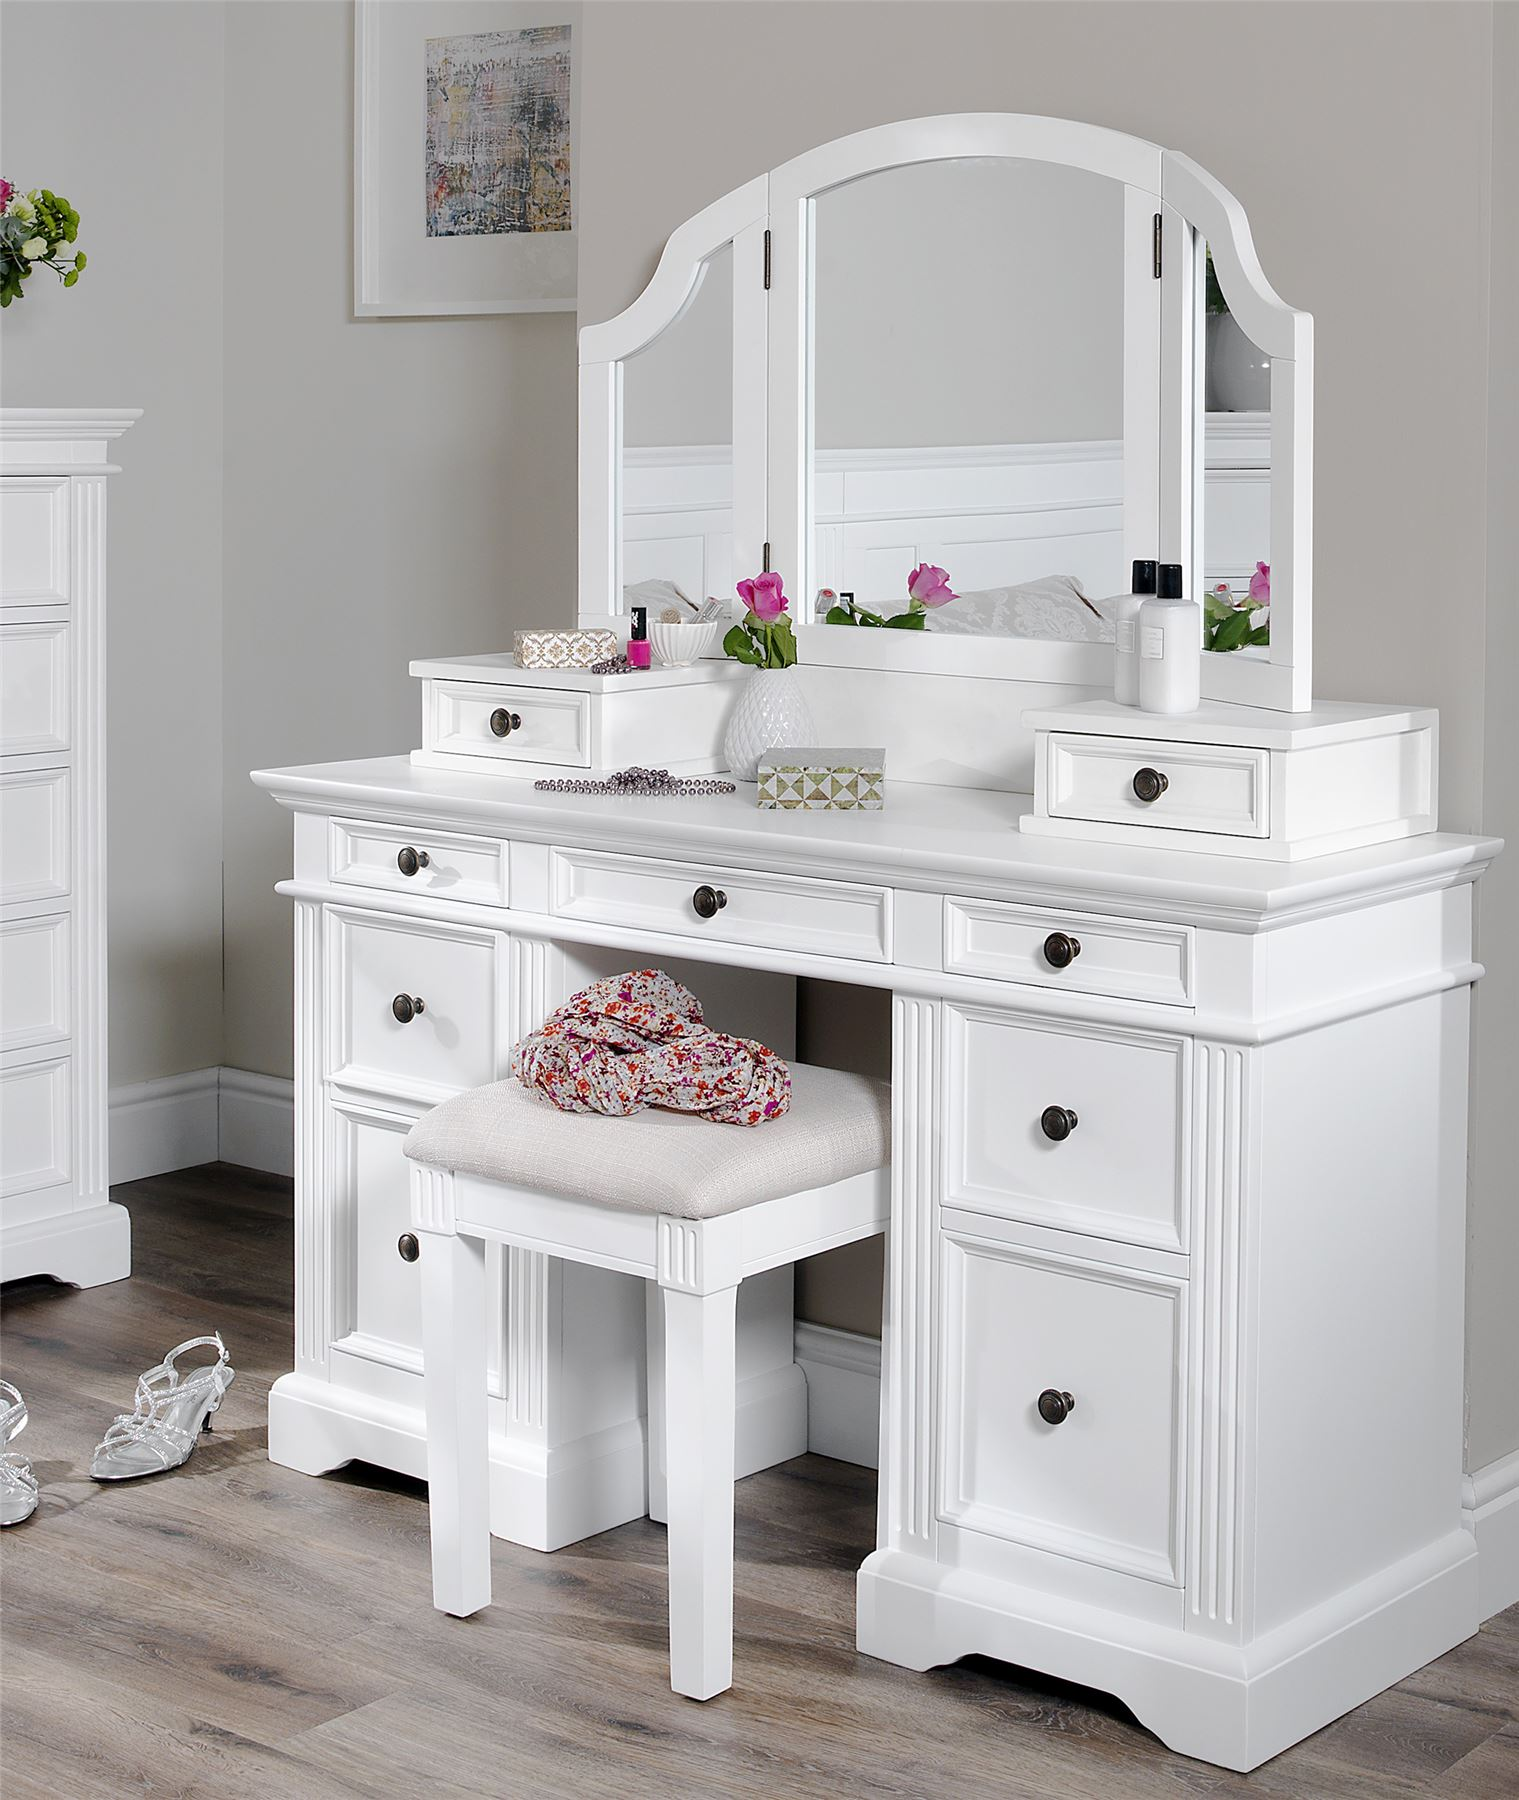 gainsborough white dressing table set dressing table. Black Bedroom Furniture Sets. Home Design Ideas